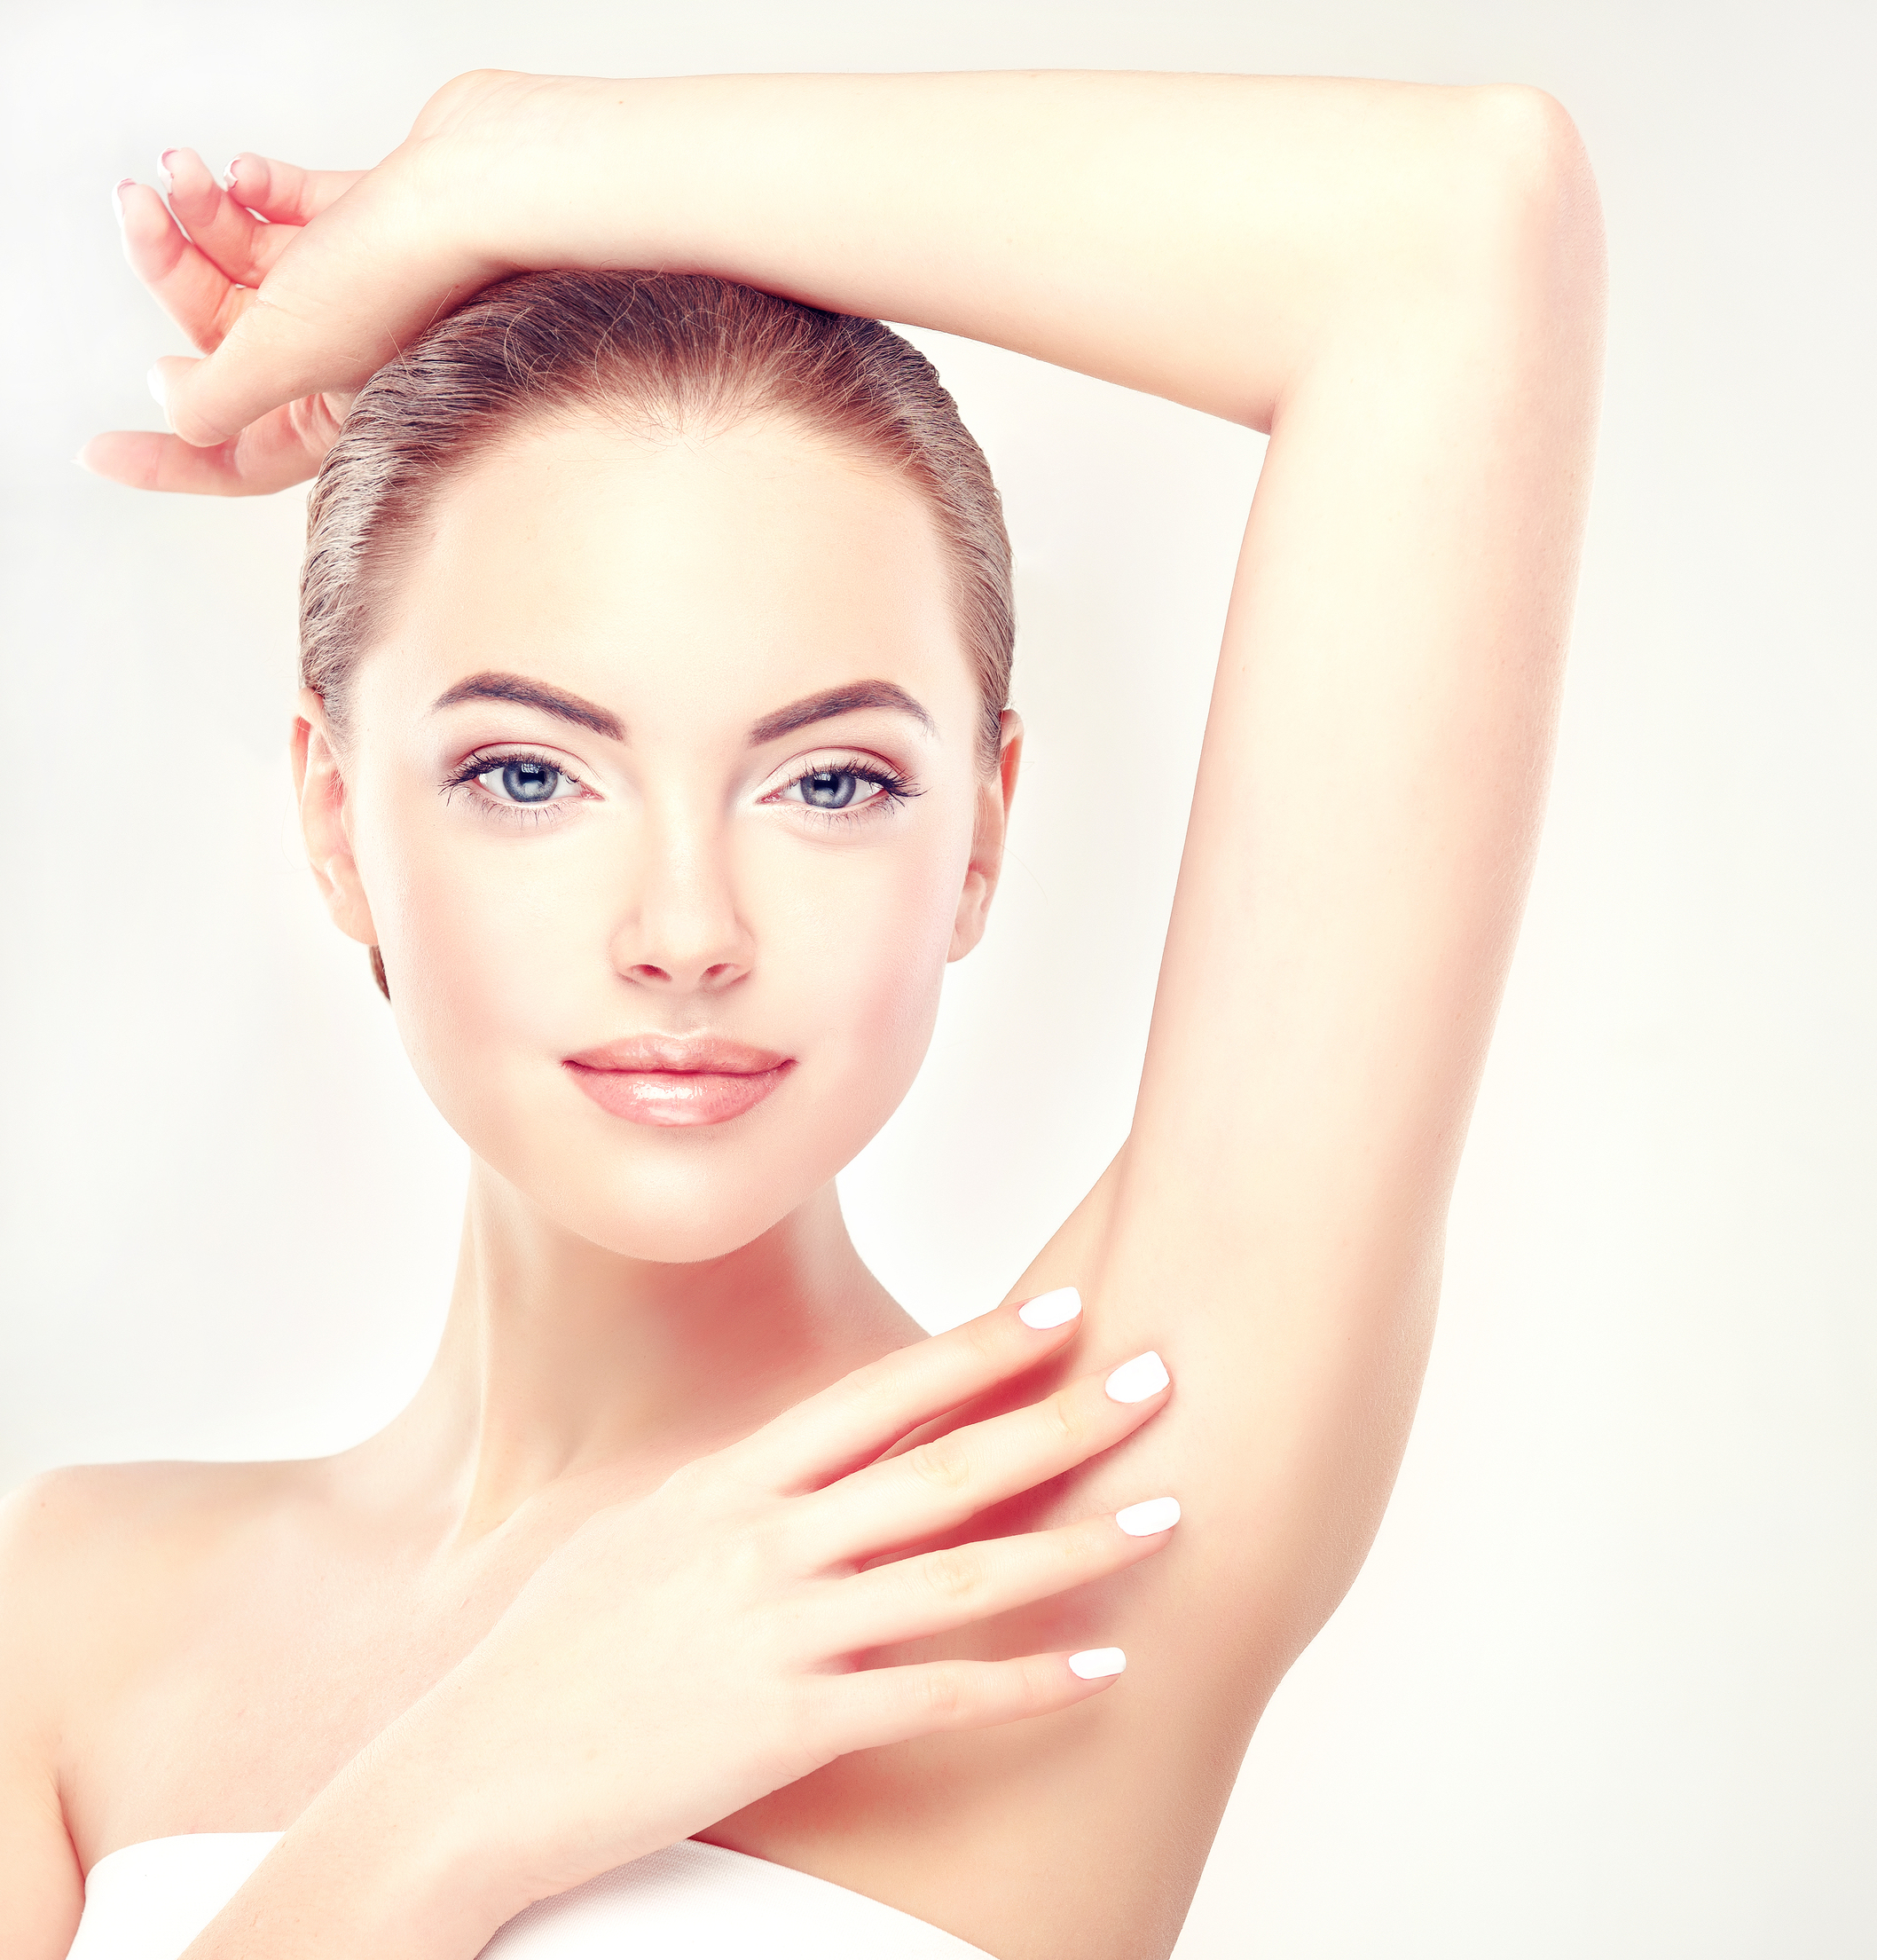 Armpit epilation, lacer hair removal. Young woman holding her arms up and showing underarms, armpit smooth clear skin .Girl showing clean armpit .Beauty portrait.Epilation and depilation of hair .